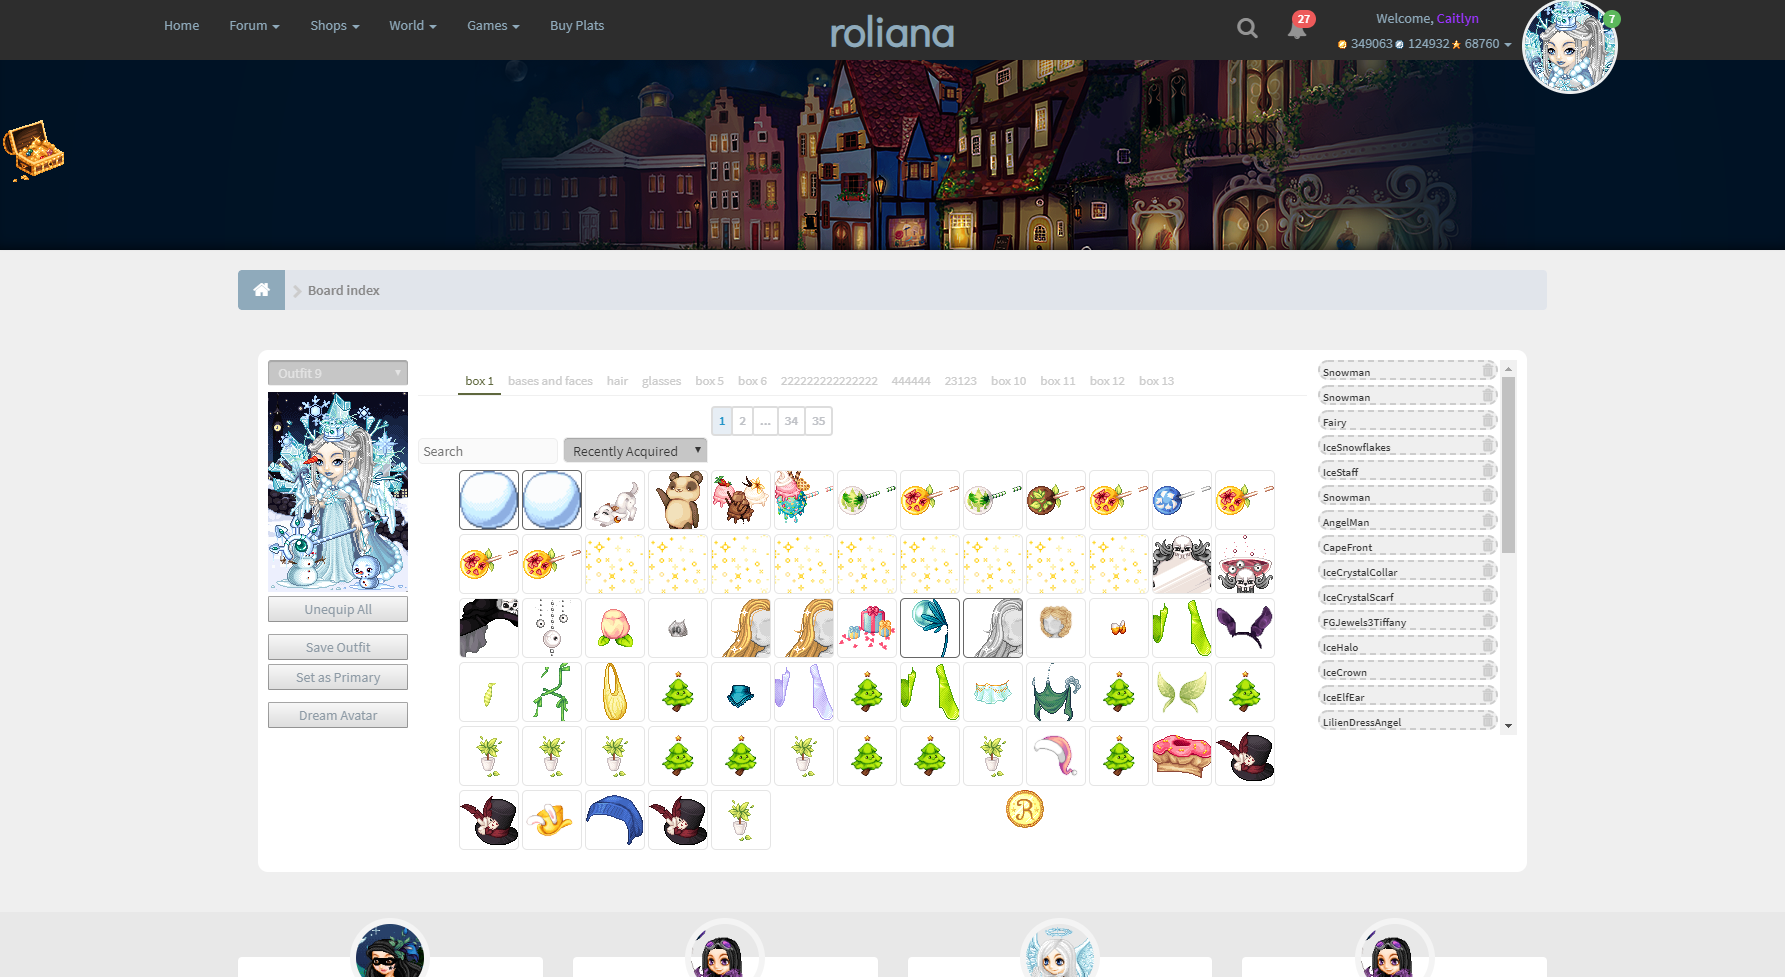 Roliana.com Avatar creation page